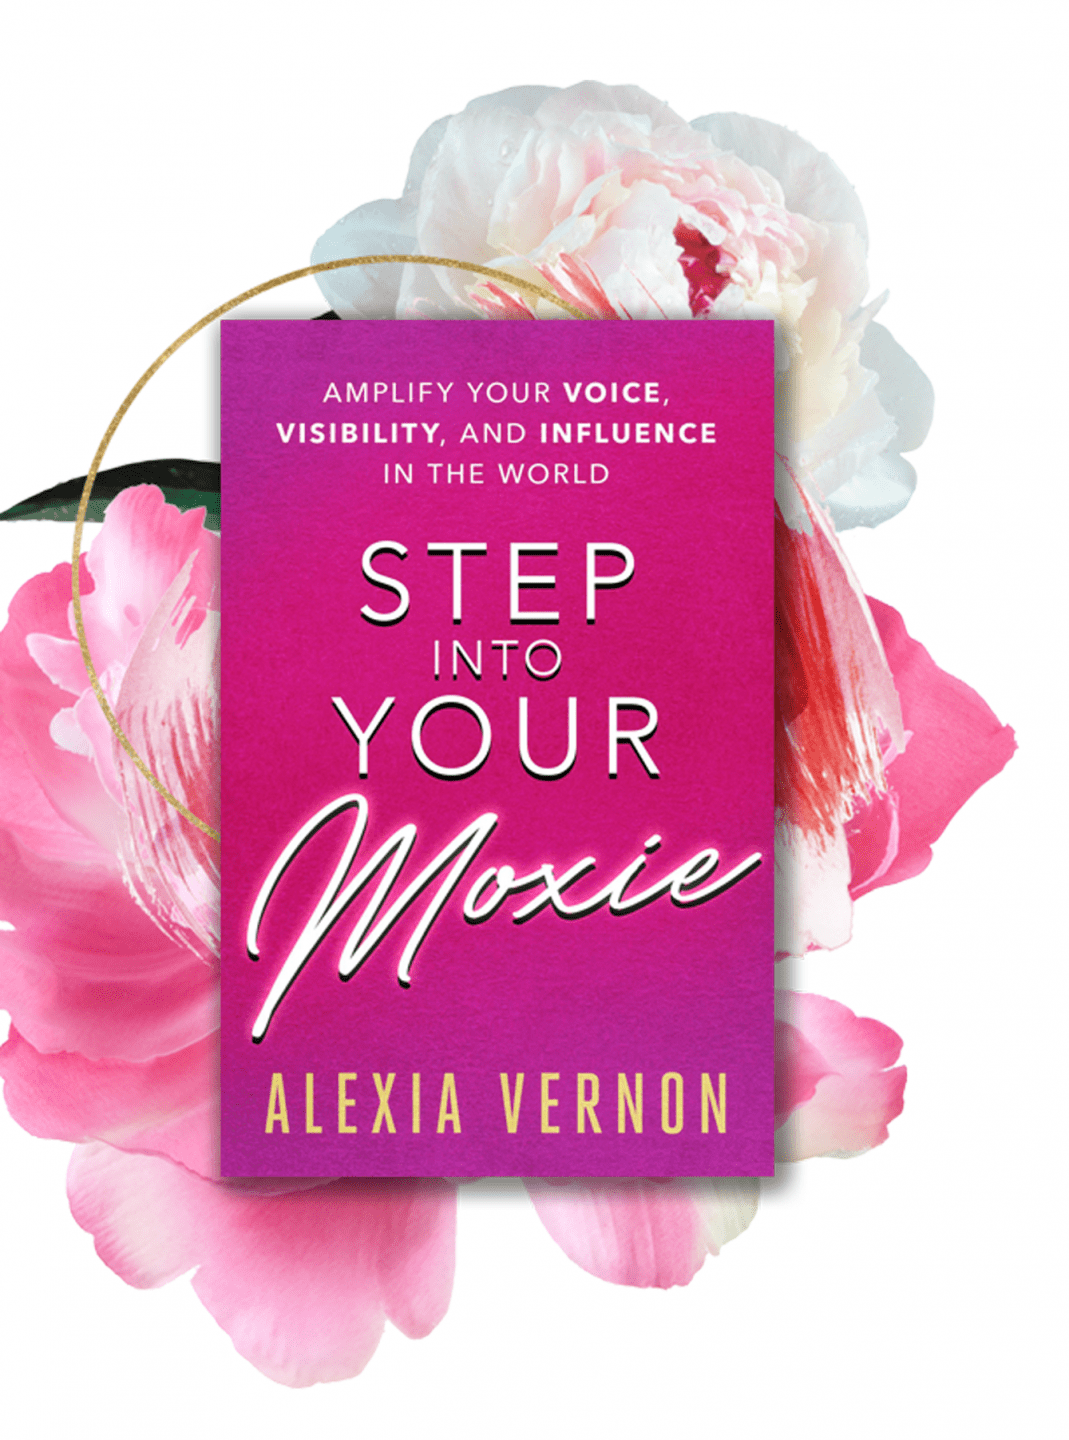 Step into Your Moxie is a timely, refreshingly playful guide for women to communicate with candor, clarity, compassion, and ease every time they open their mouths to speak.